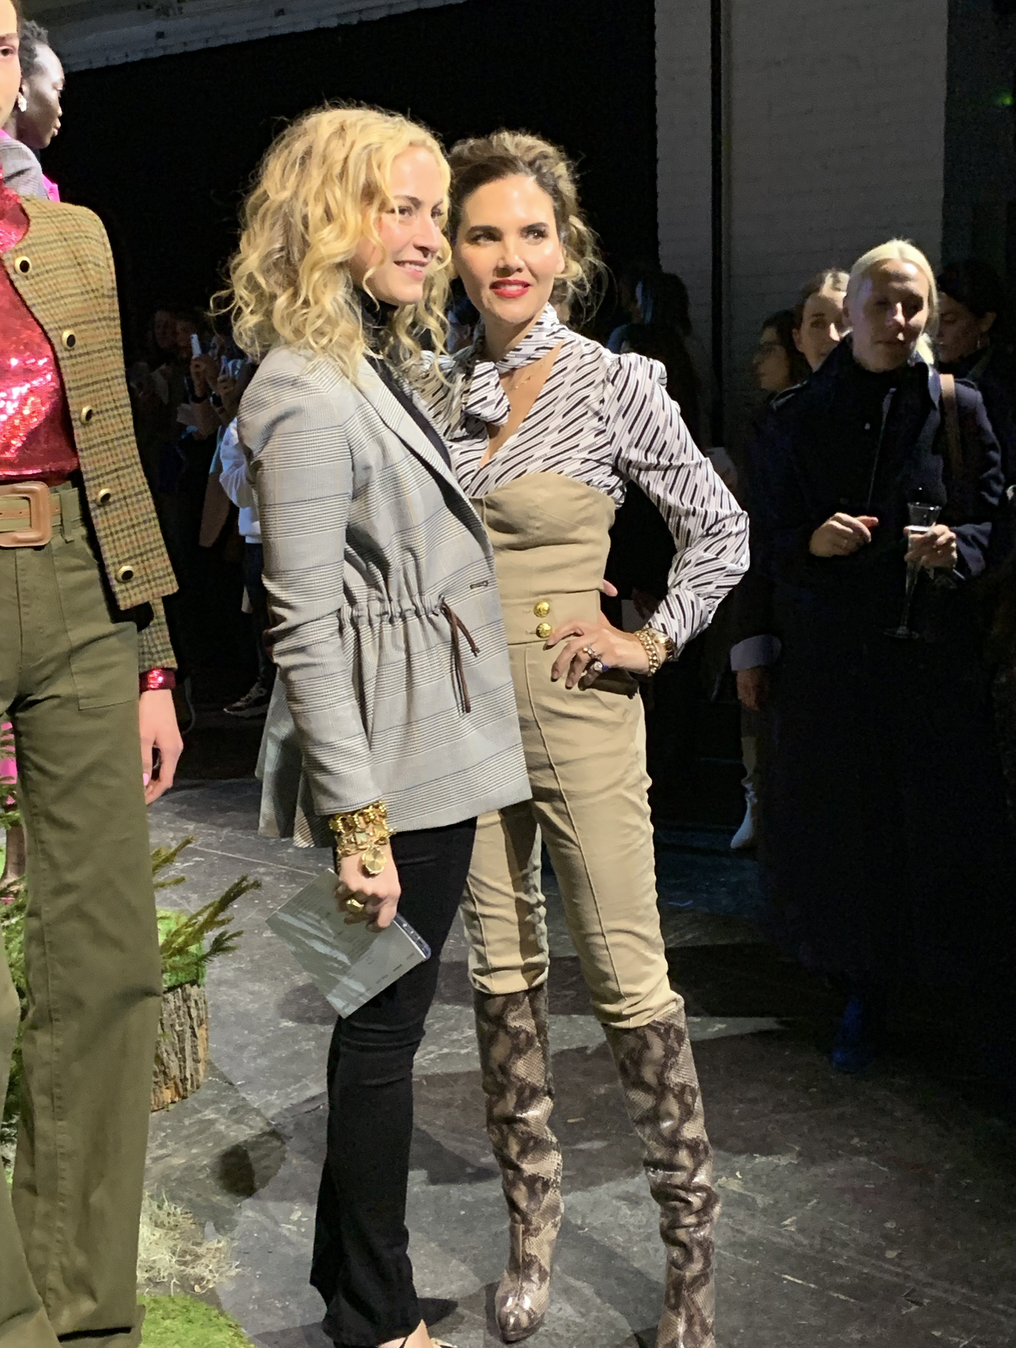 Veronica Beard - Pictured are Veronica S. Beard (left) and Veronica M. Beard (right) at the Veronica Beard Fashion show on February 11th, 2019